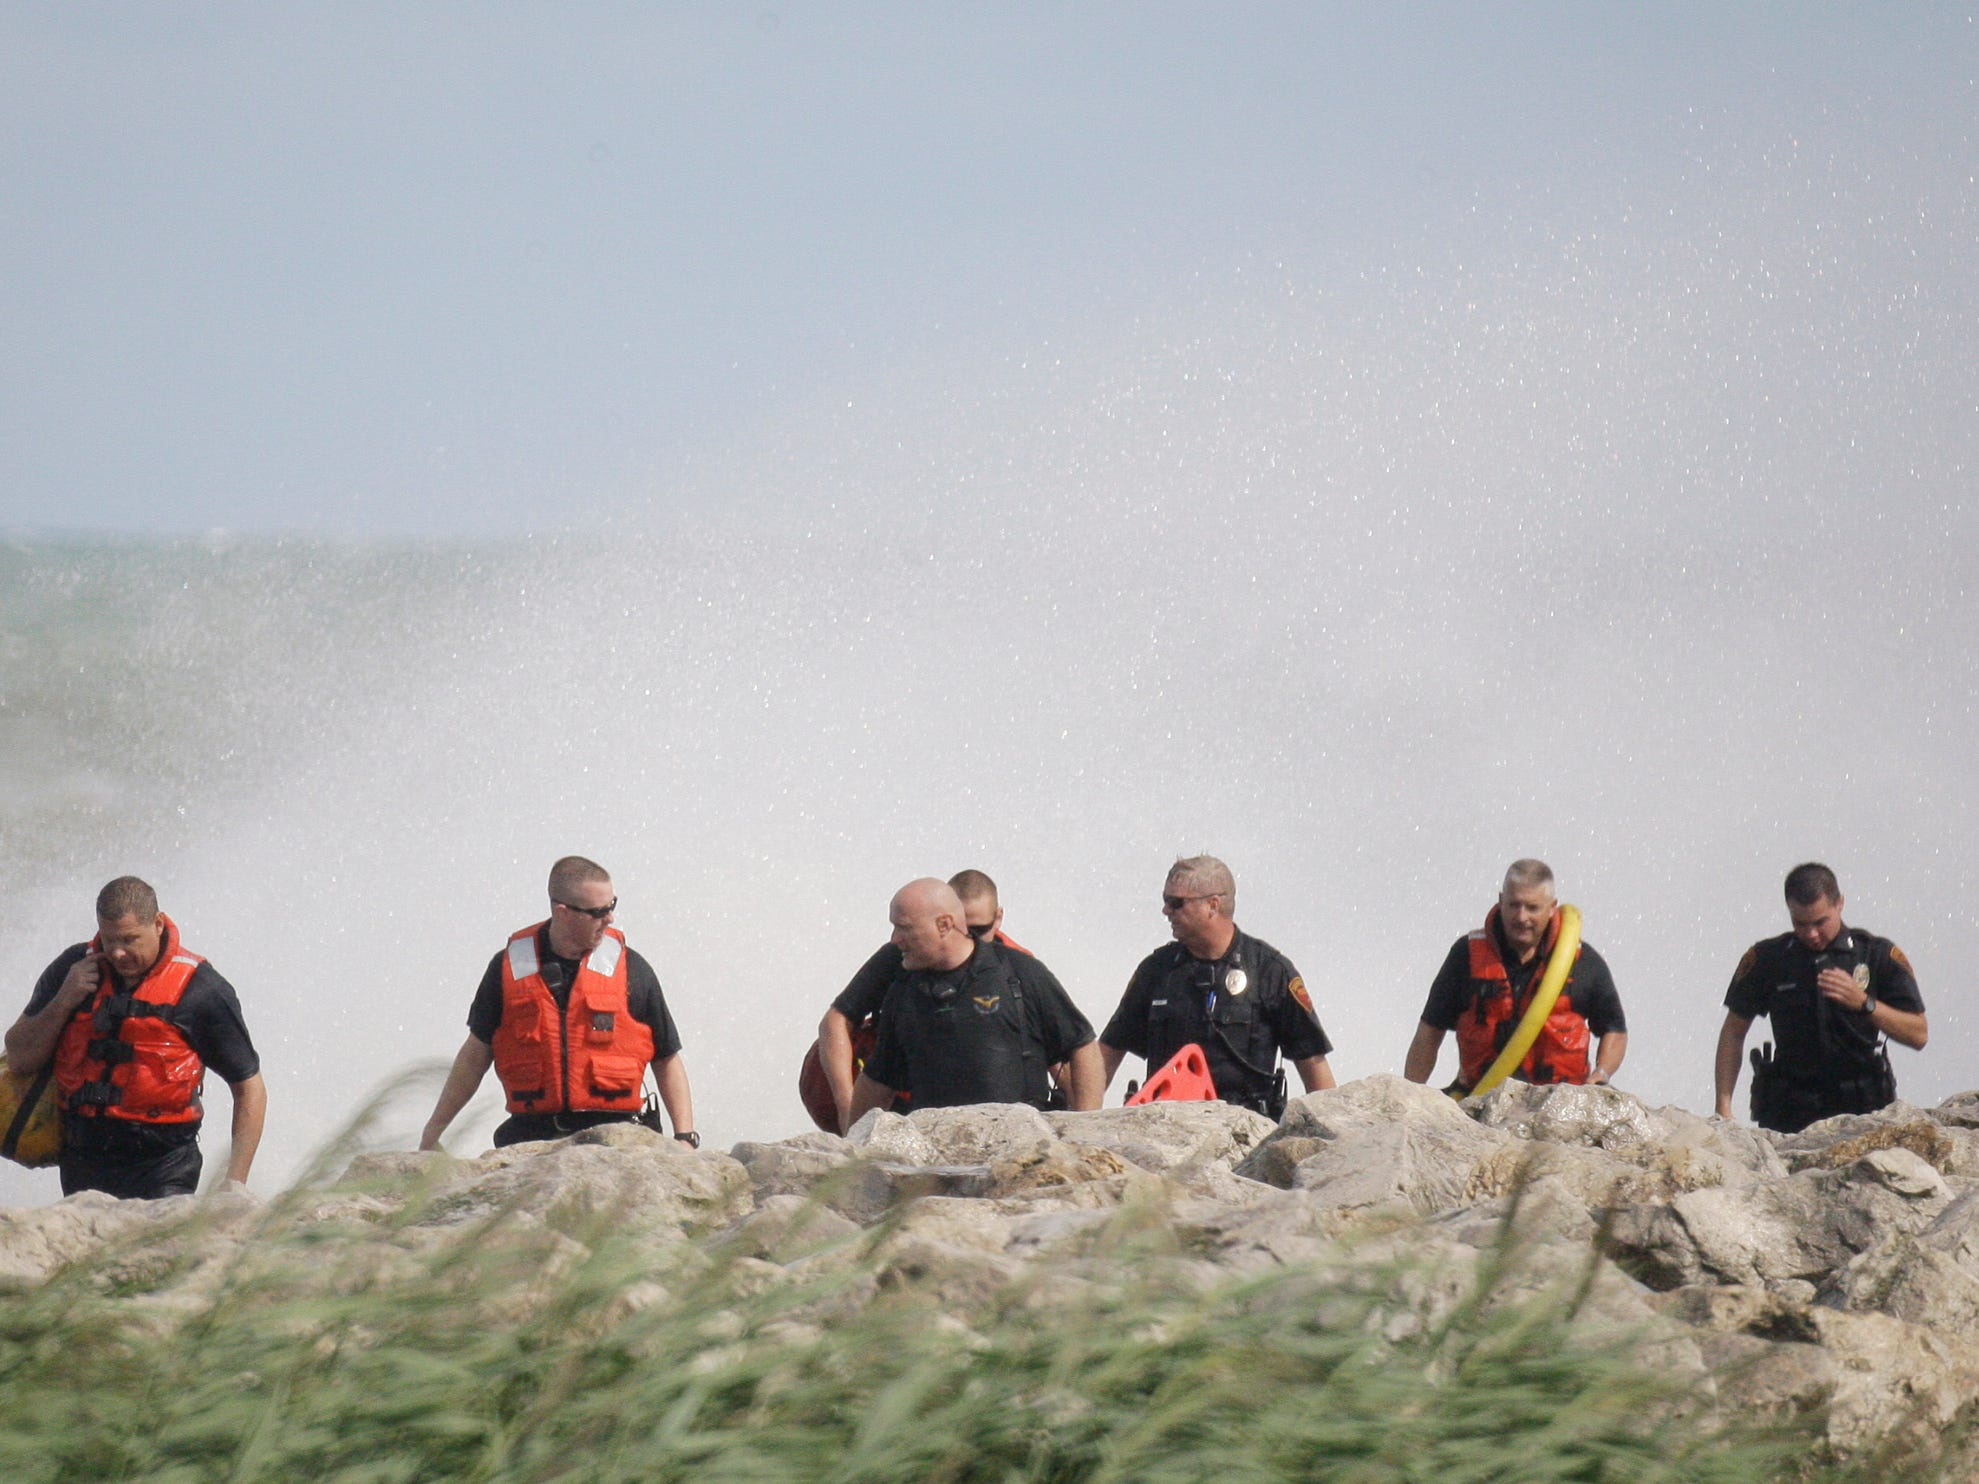 An overall at search operations at North Pier on Aug. 10, 2012, in Sheboygan, Wis.  FILE PHOTO